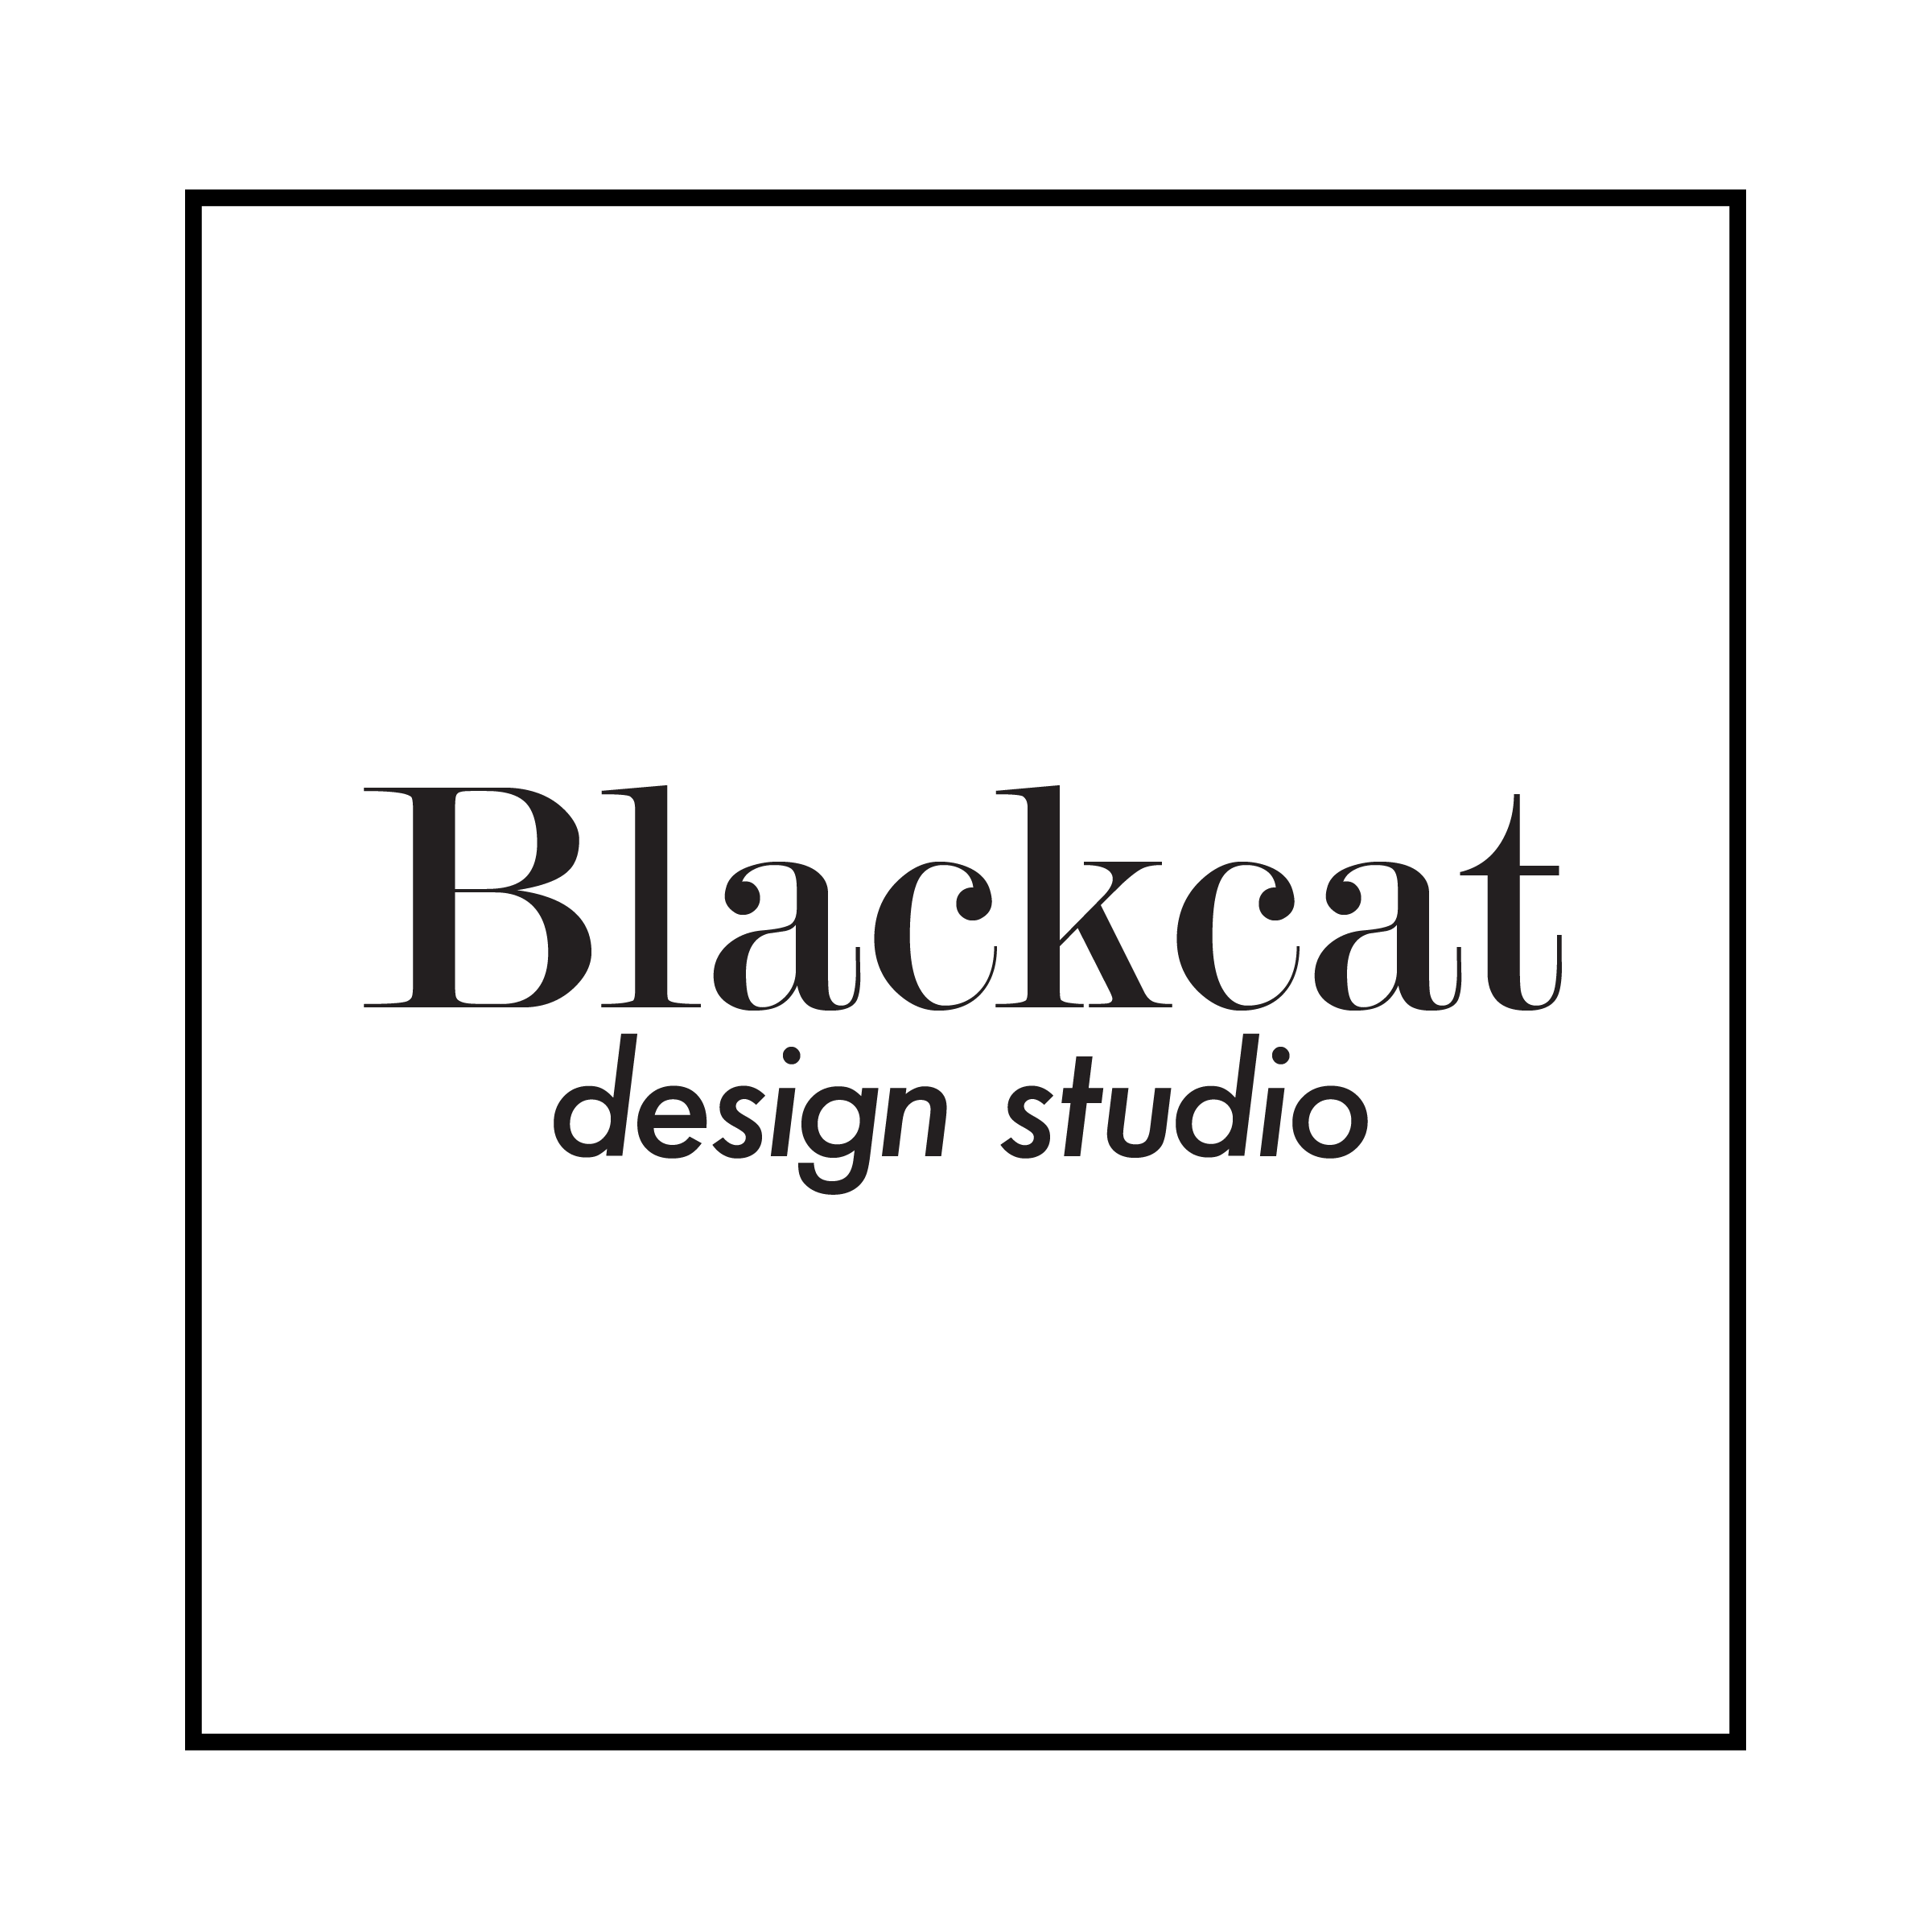 Blackcat Design Studio